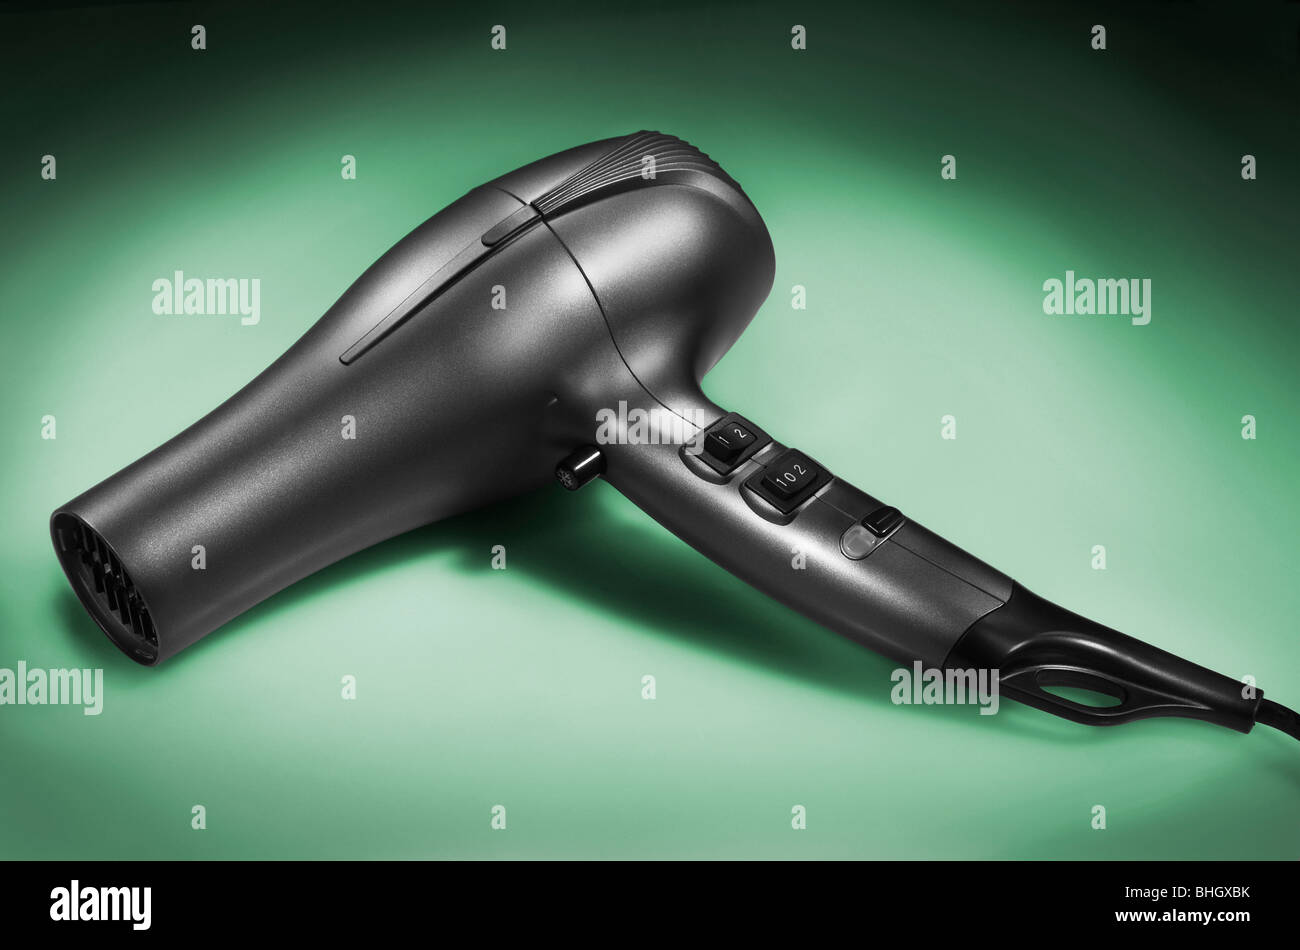 Product shot of hair dryer - Stock Image